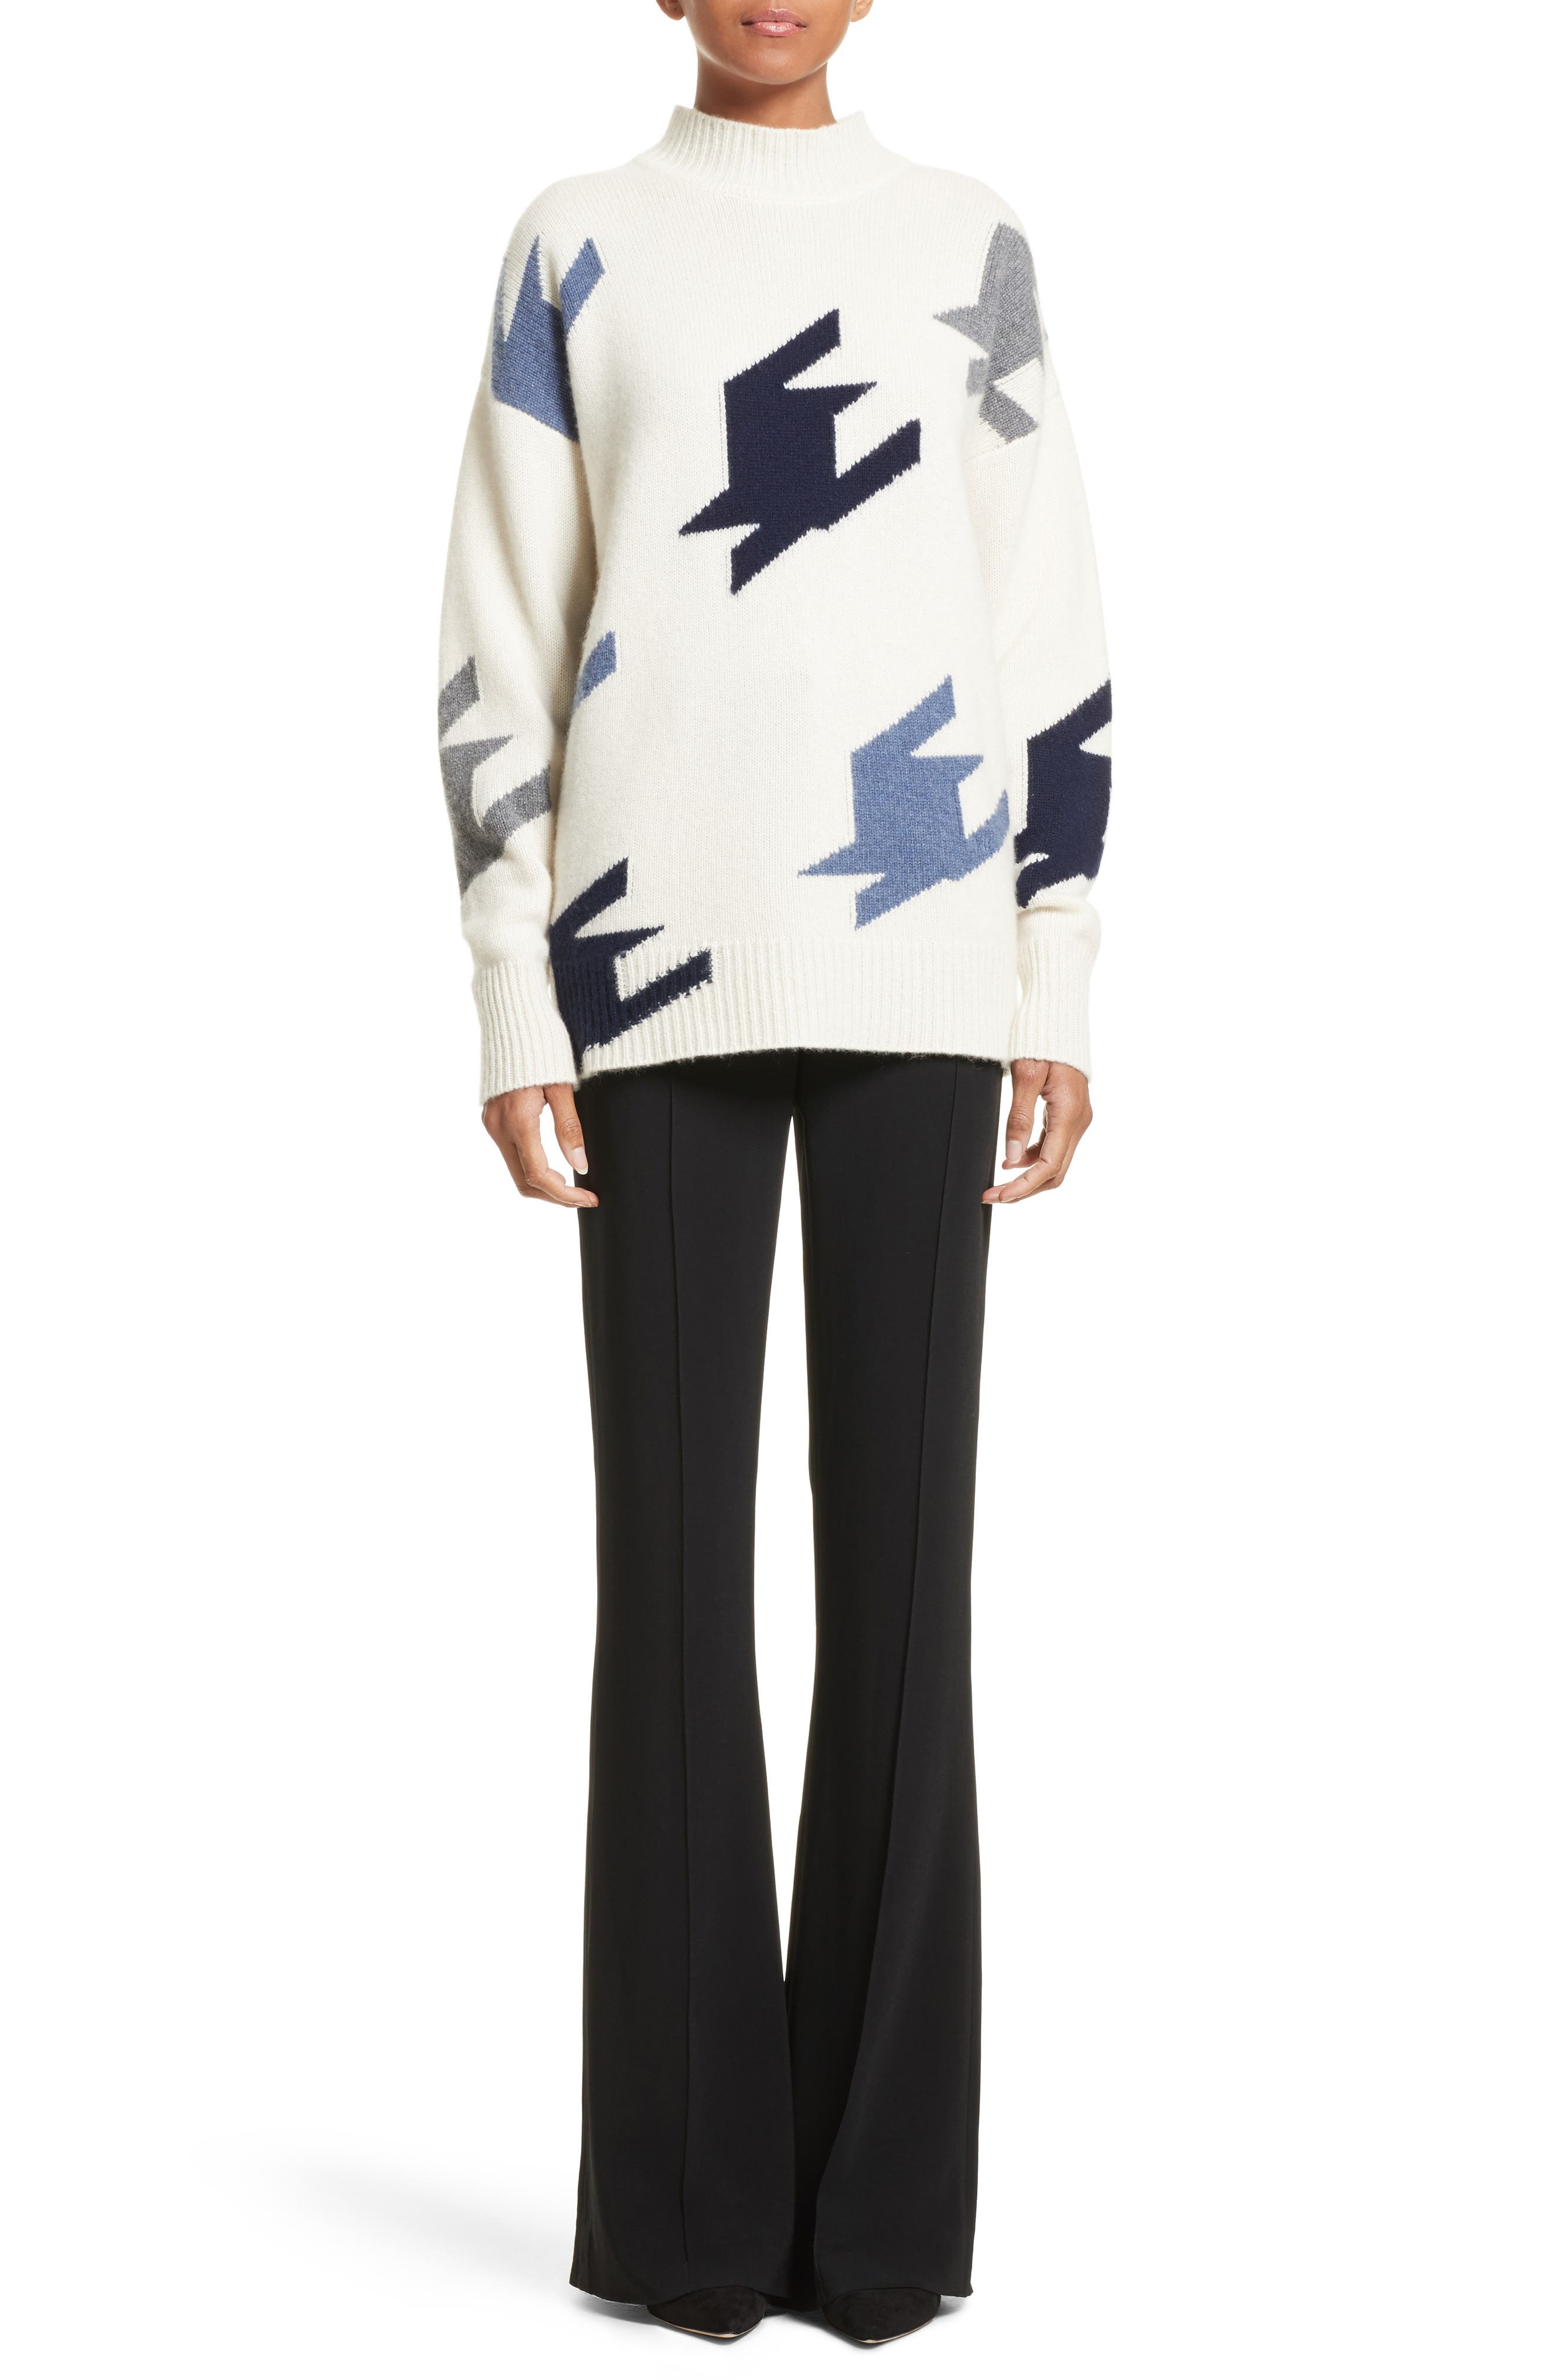 VICTORIA BECKHAM,                             Houndstooth Cashmere Sweater,                             Alternate thumbnail 6, color,                             905